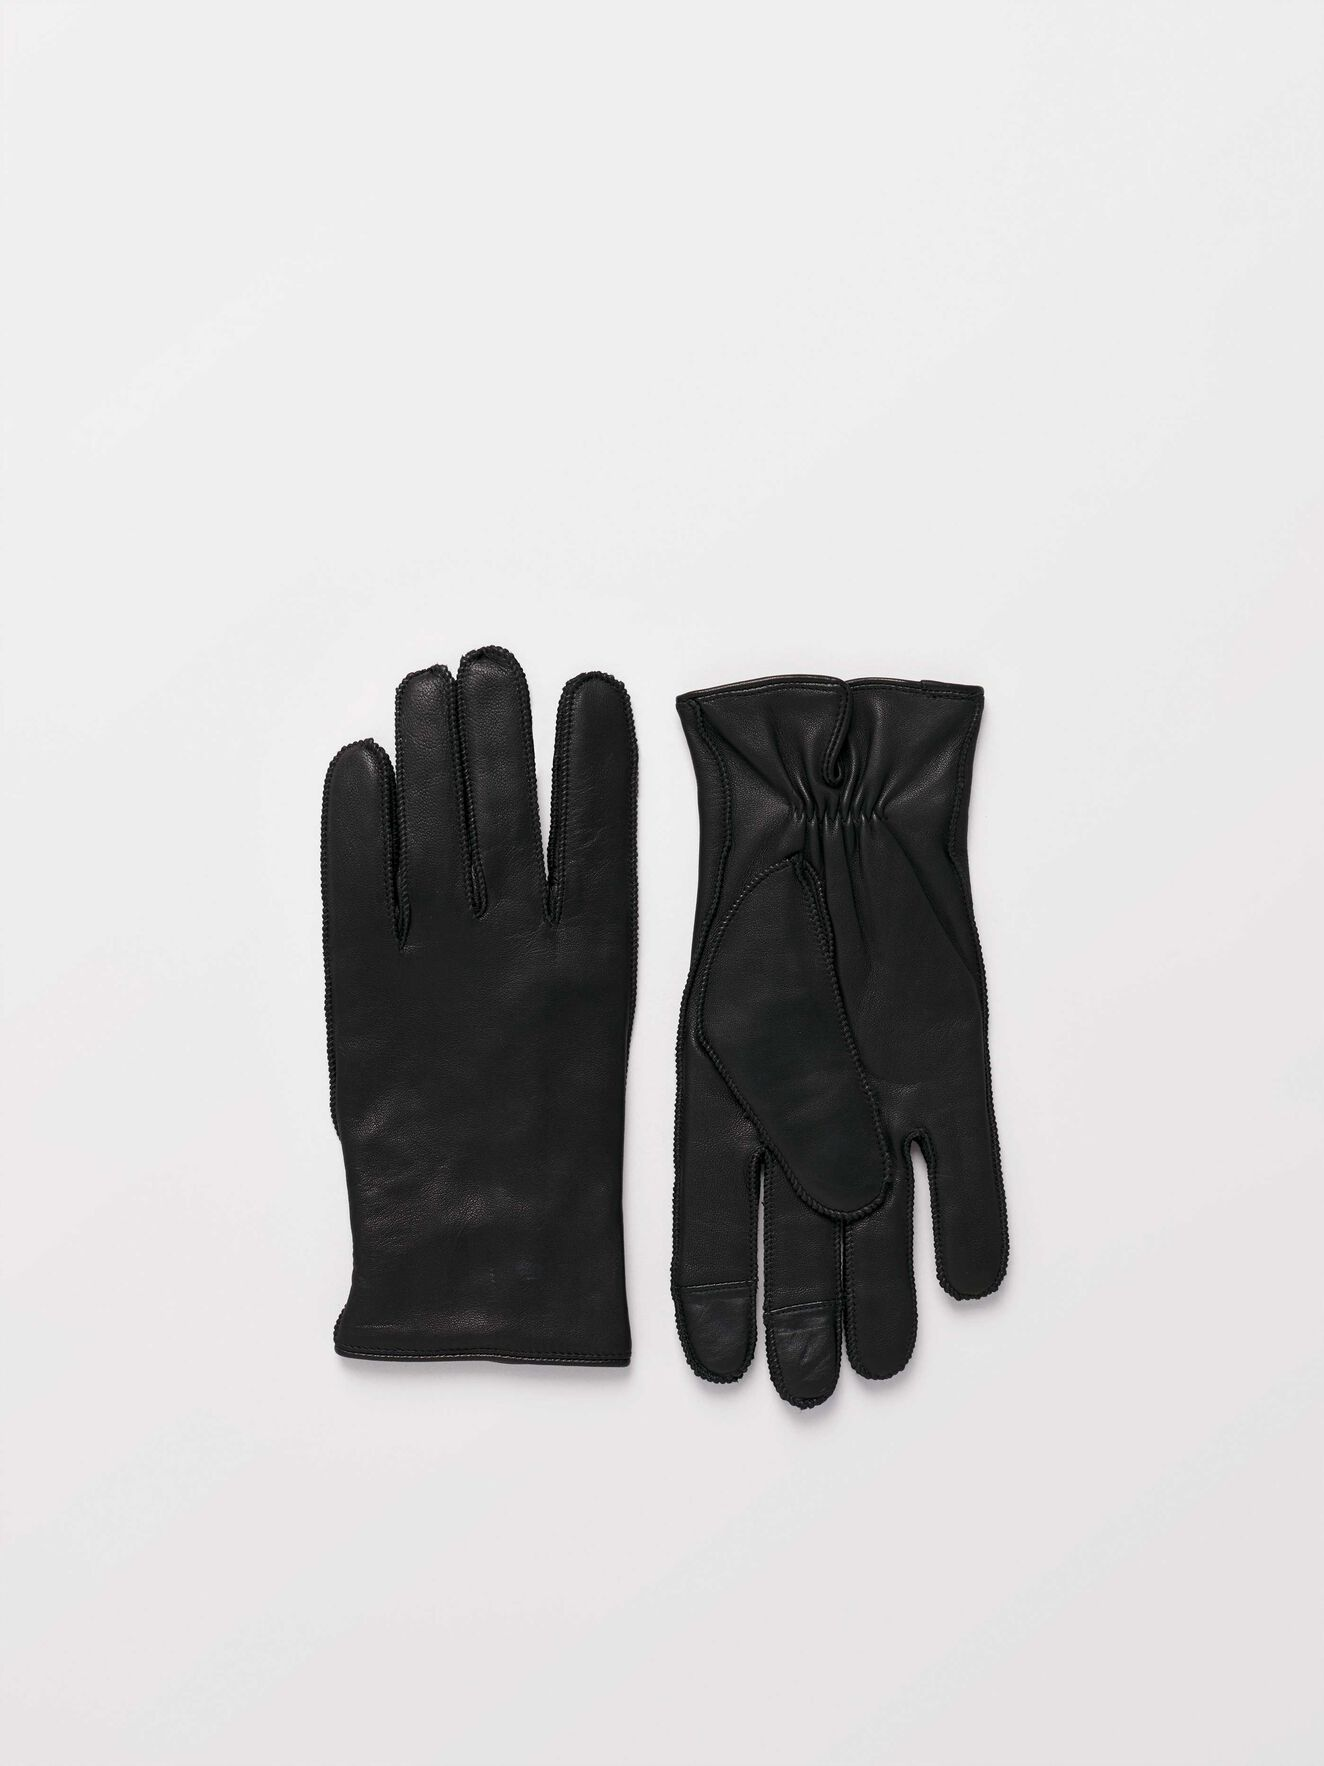 Gandalus Gloves in Black from Tiger of Sweden